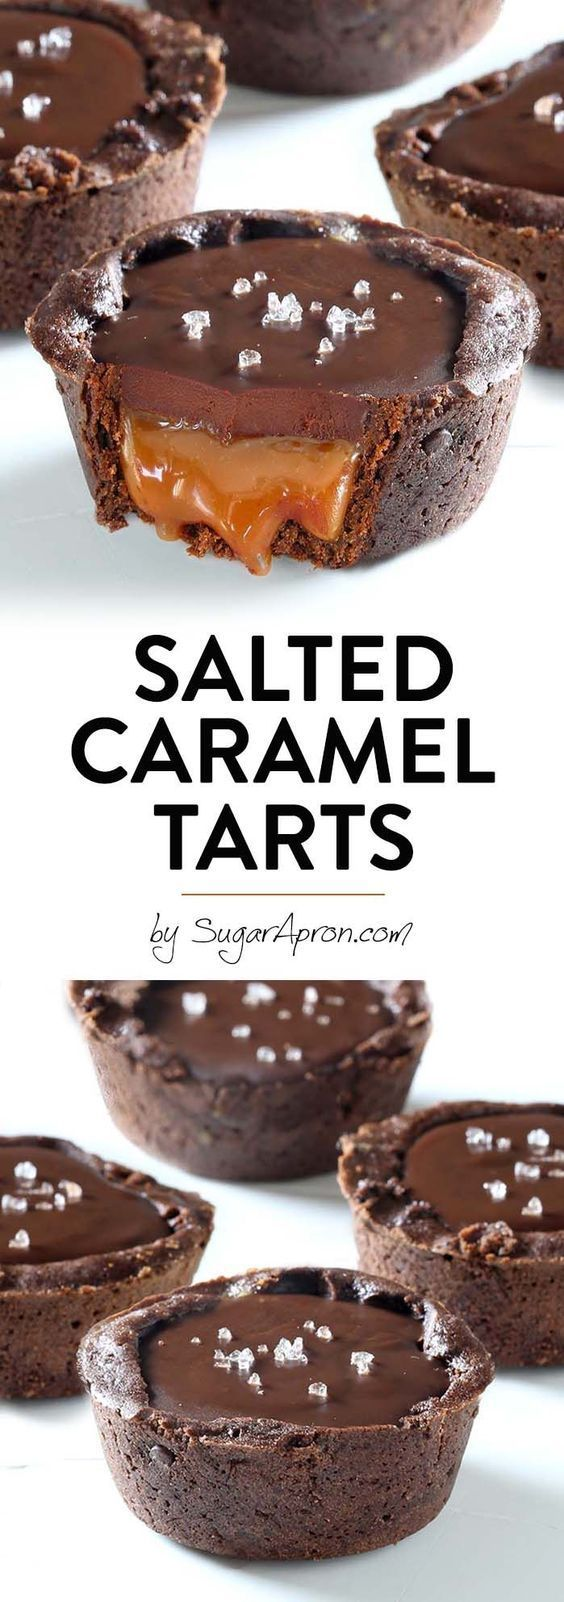 Salted Caramel Desserts Recipes You'll Love | The WHOot